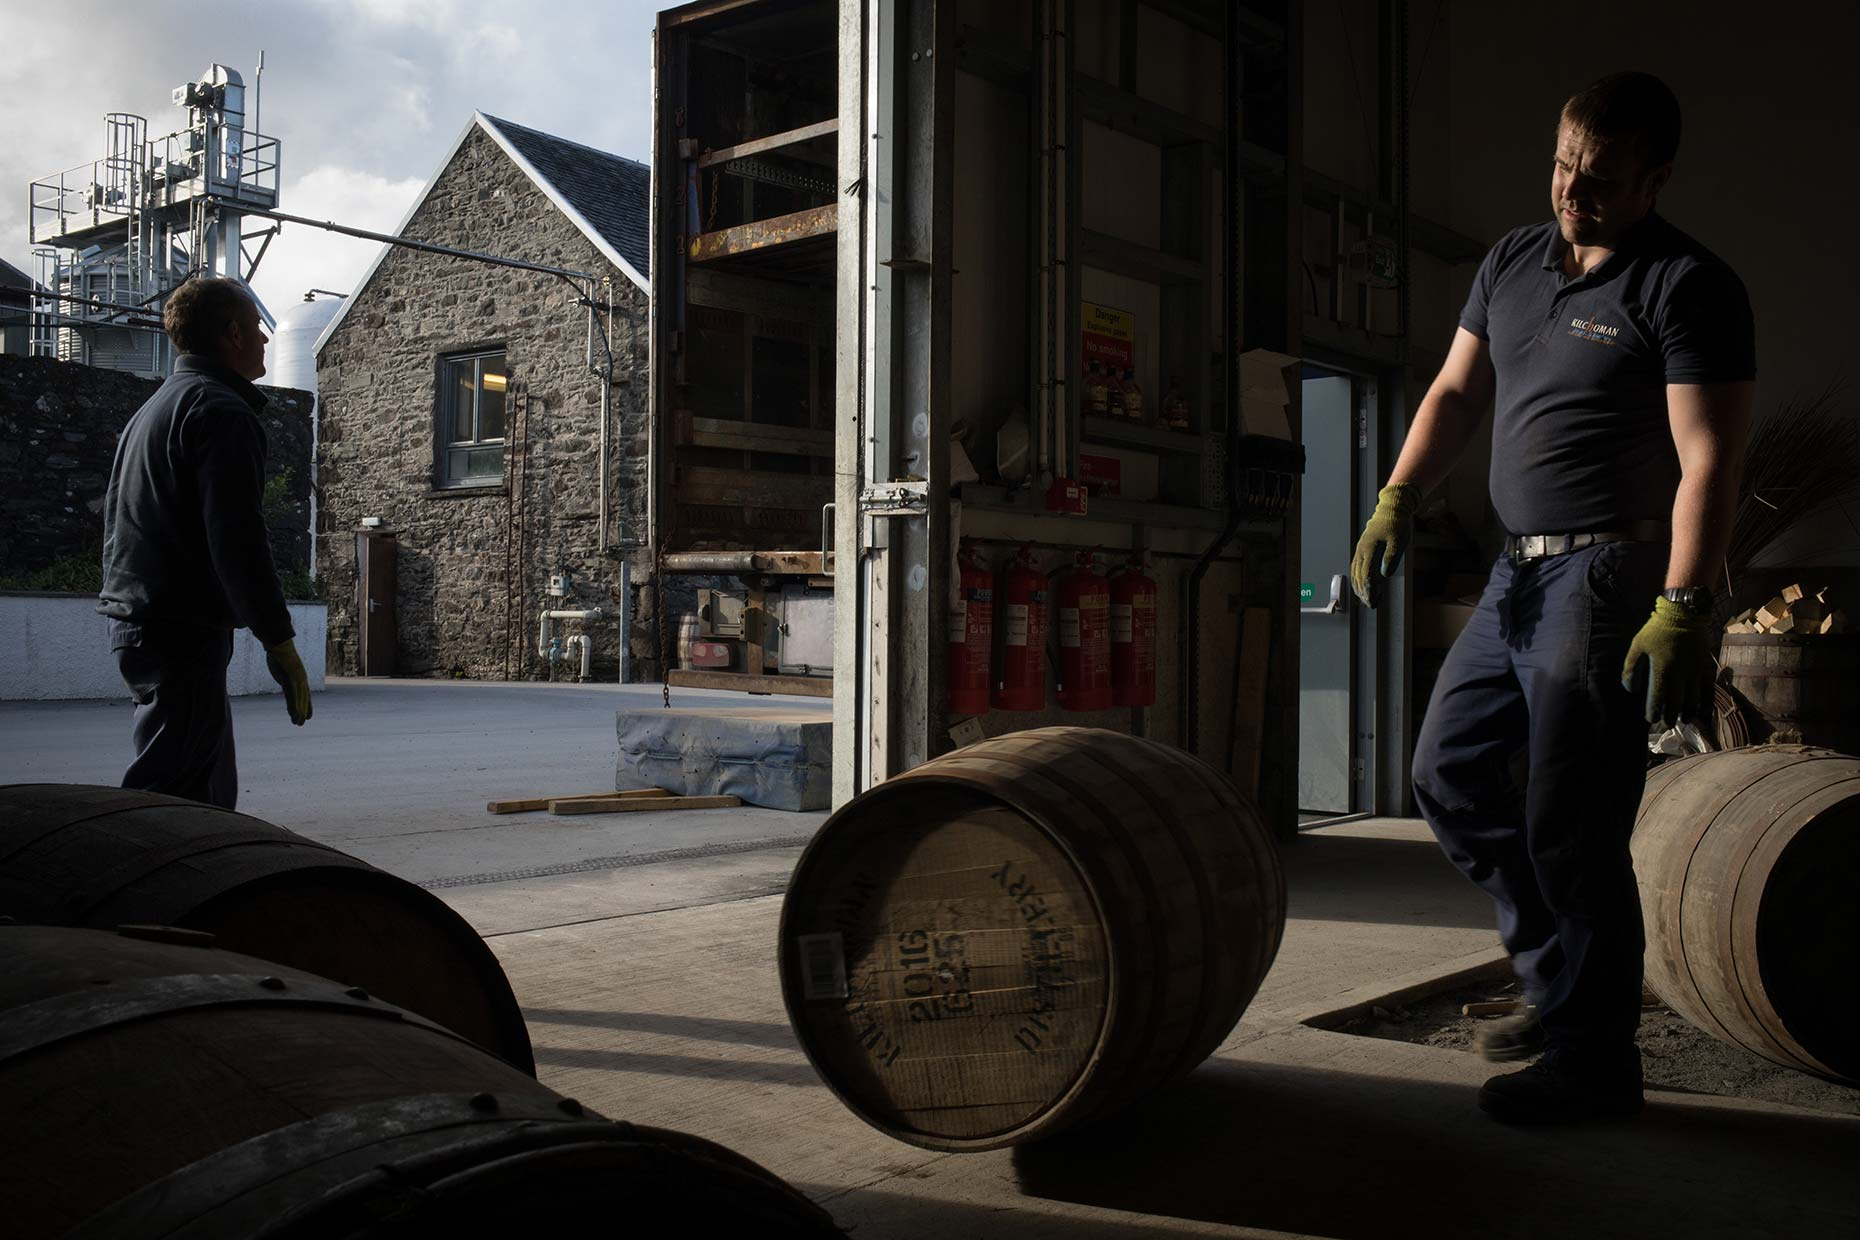 Unloading casks at Kilchoman single malt whisky, Islay, Scotland